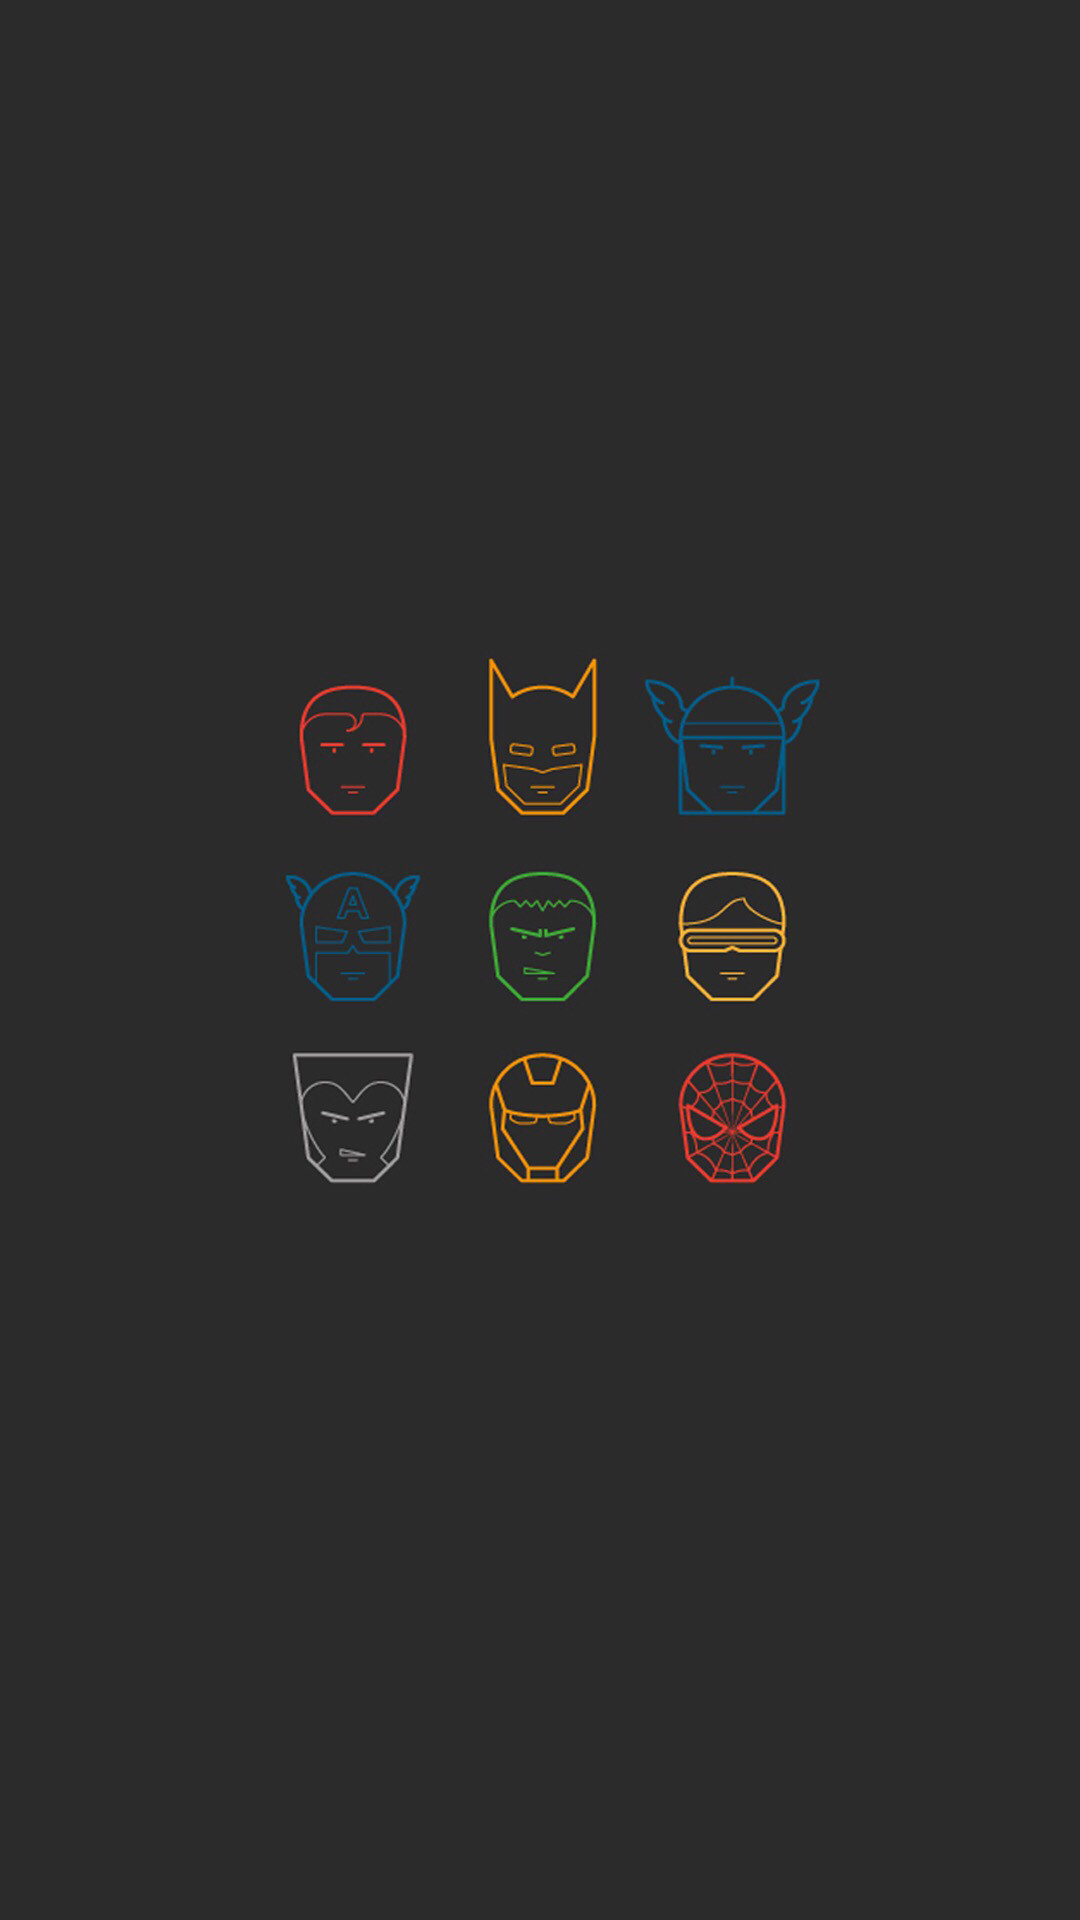 Must see Wallpaper Marvel Android Phone - 479323  Image_723164.jpg